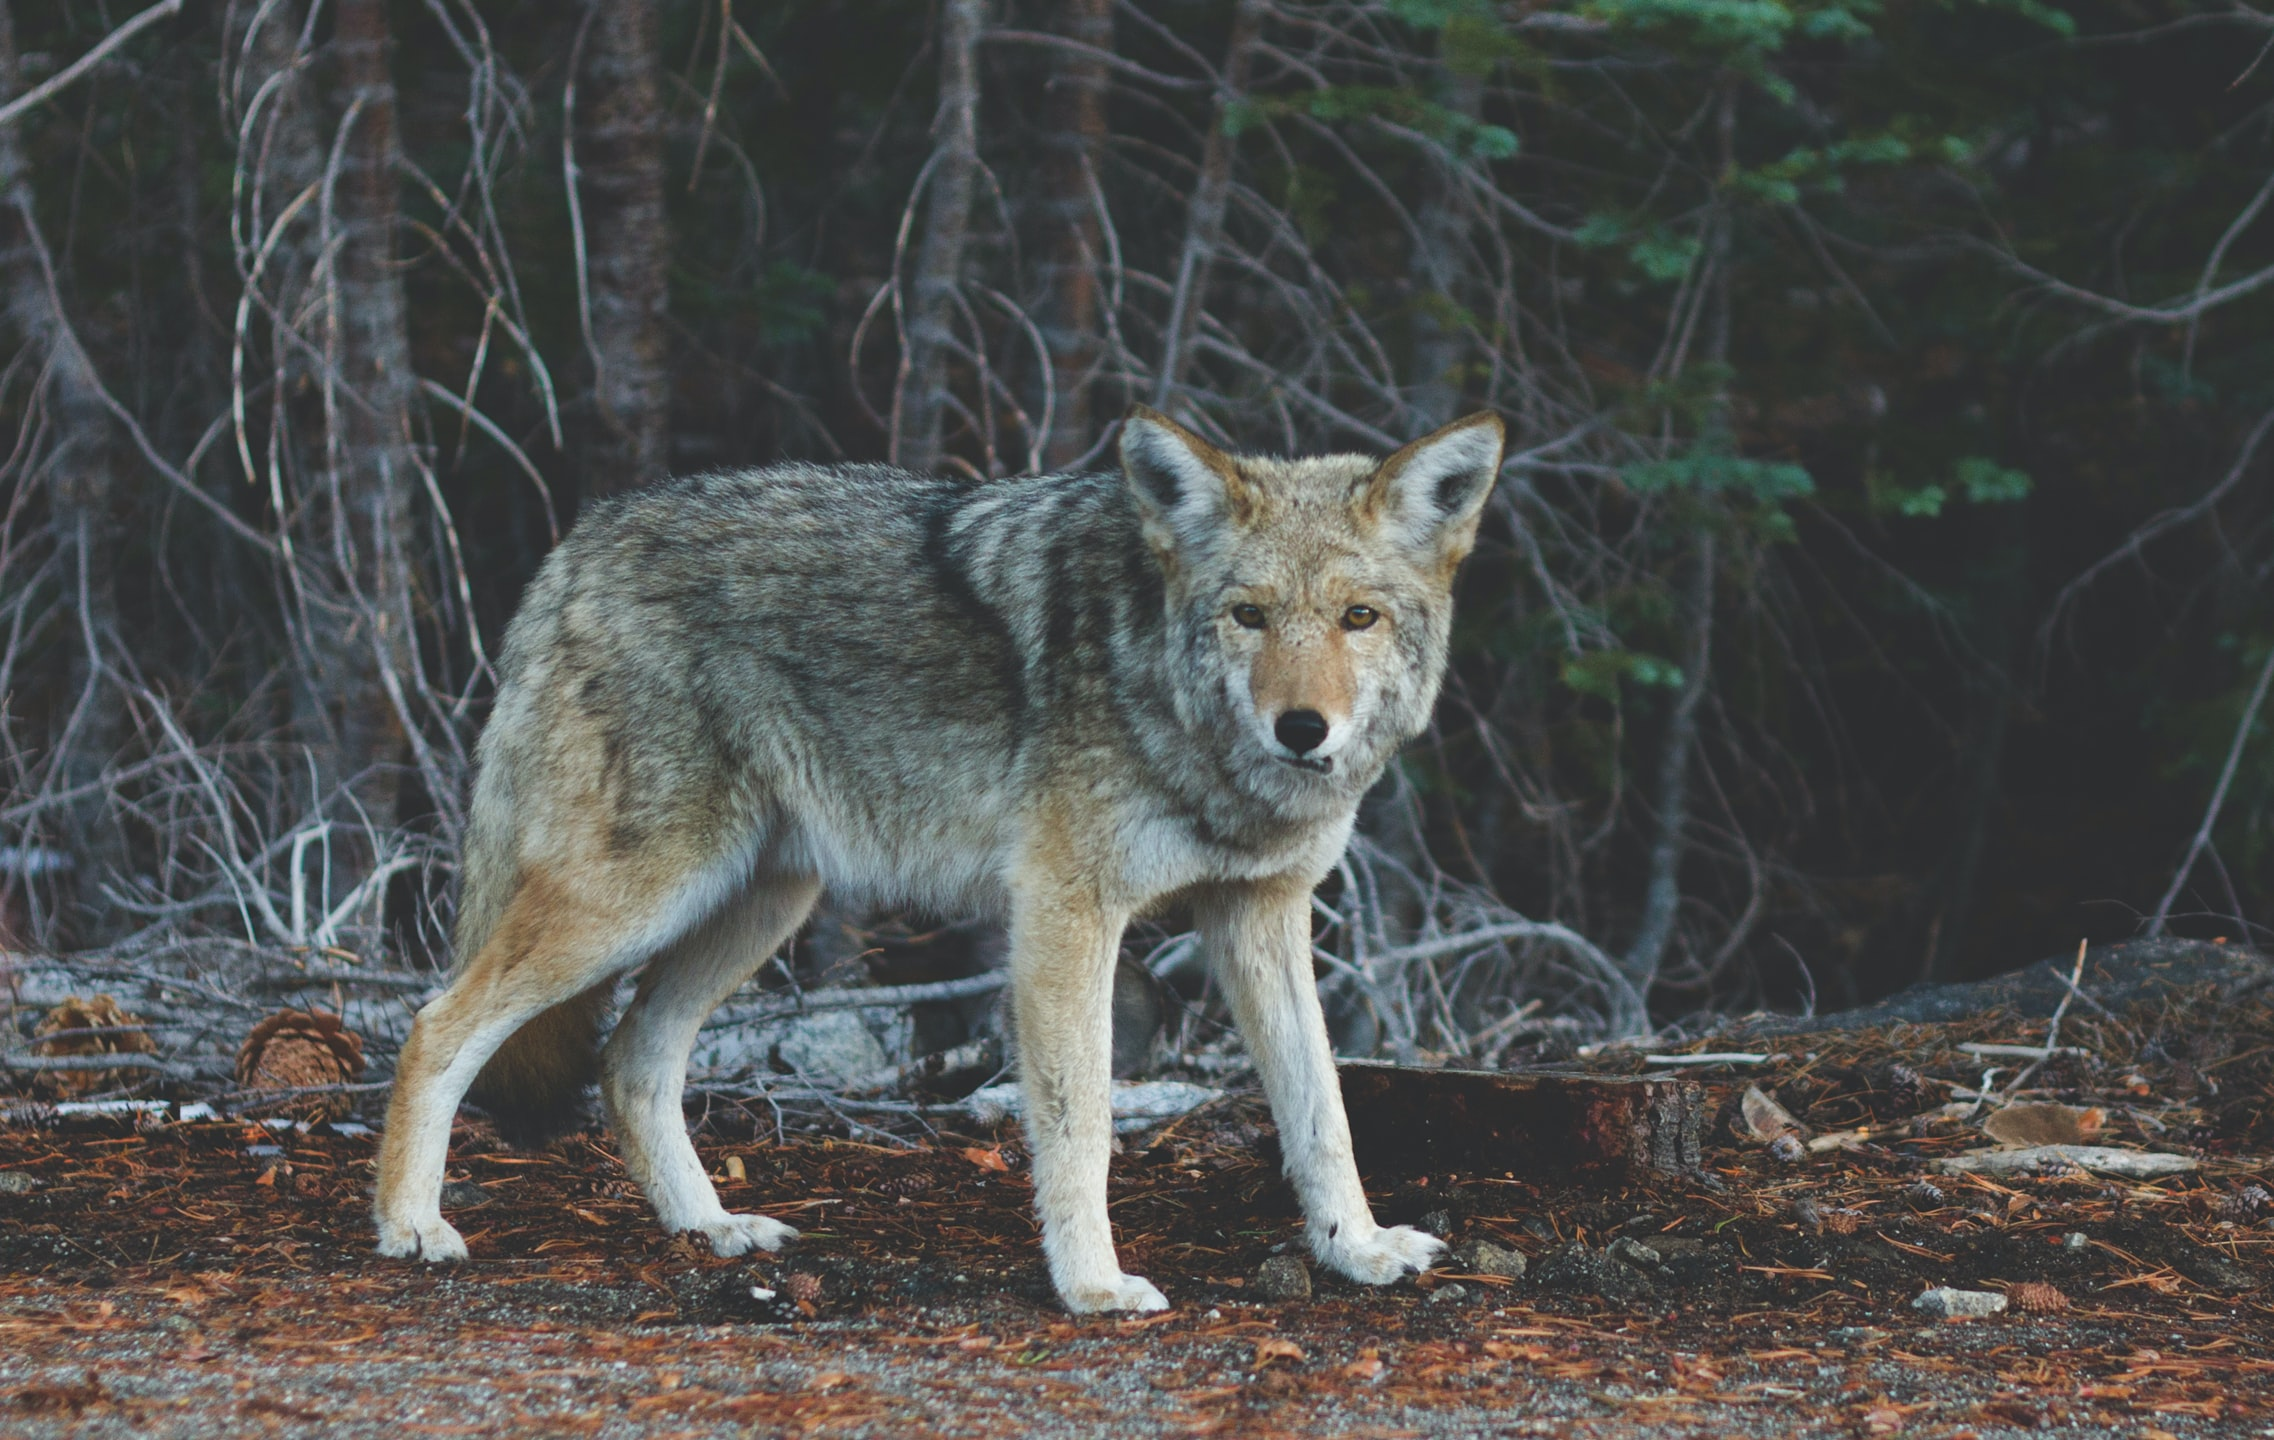 focus photography of standing wolf near tree